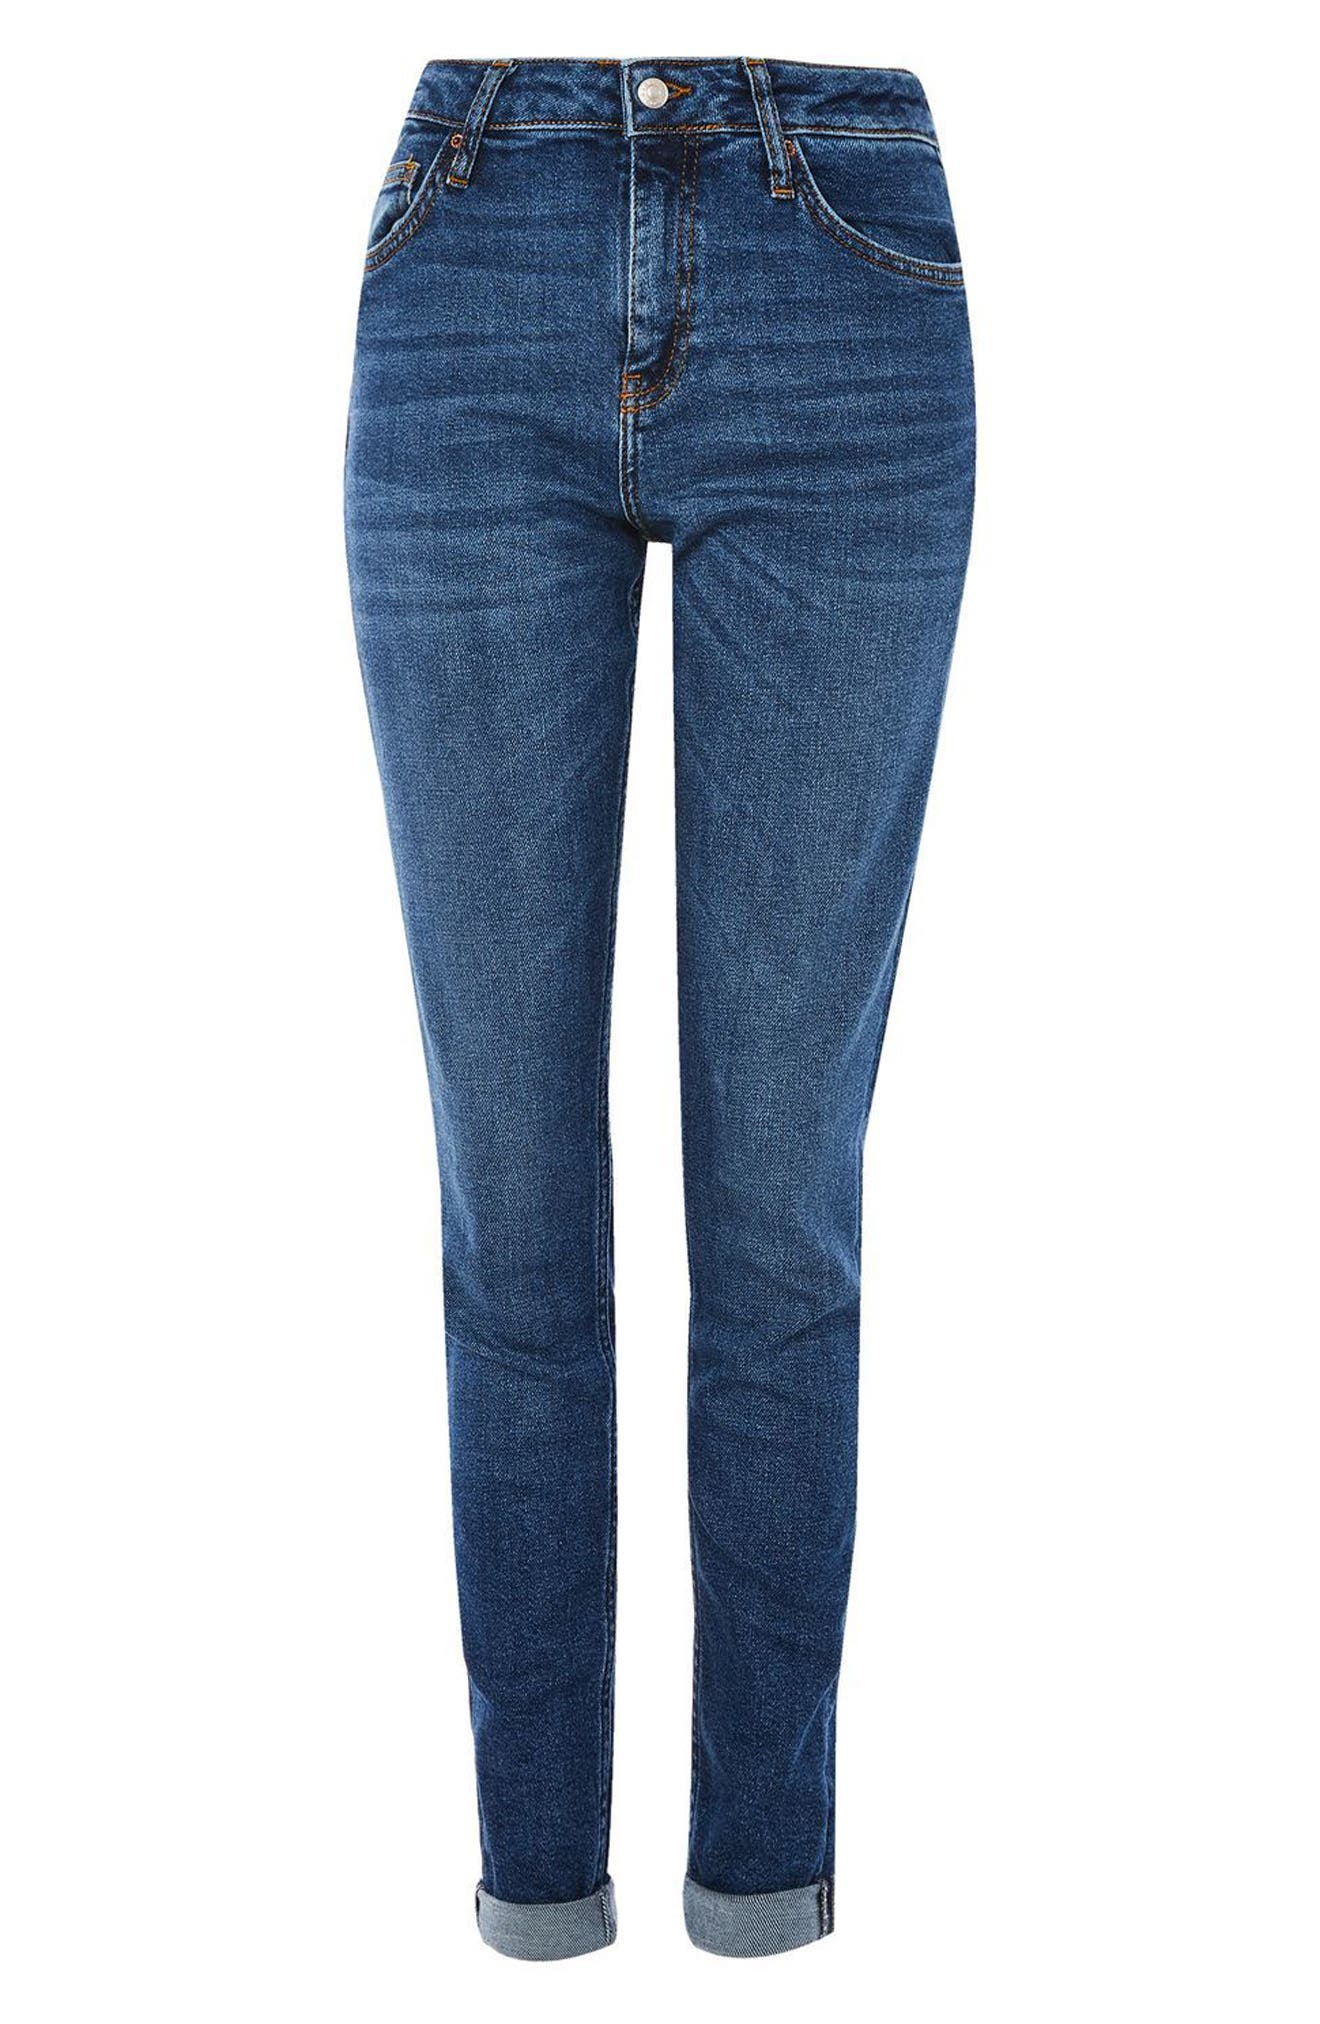 Lucas Relaxed Fit Jeans,                             Alternate thumbnail 3, color,                             400